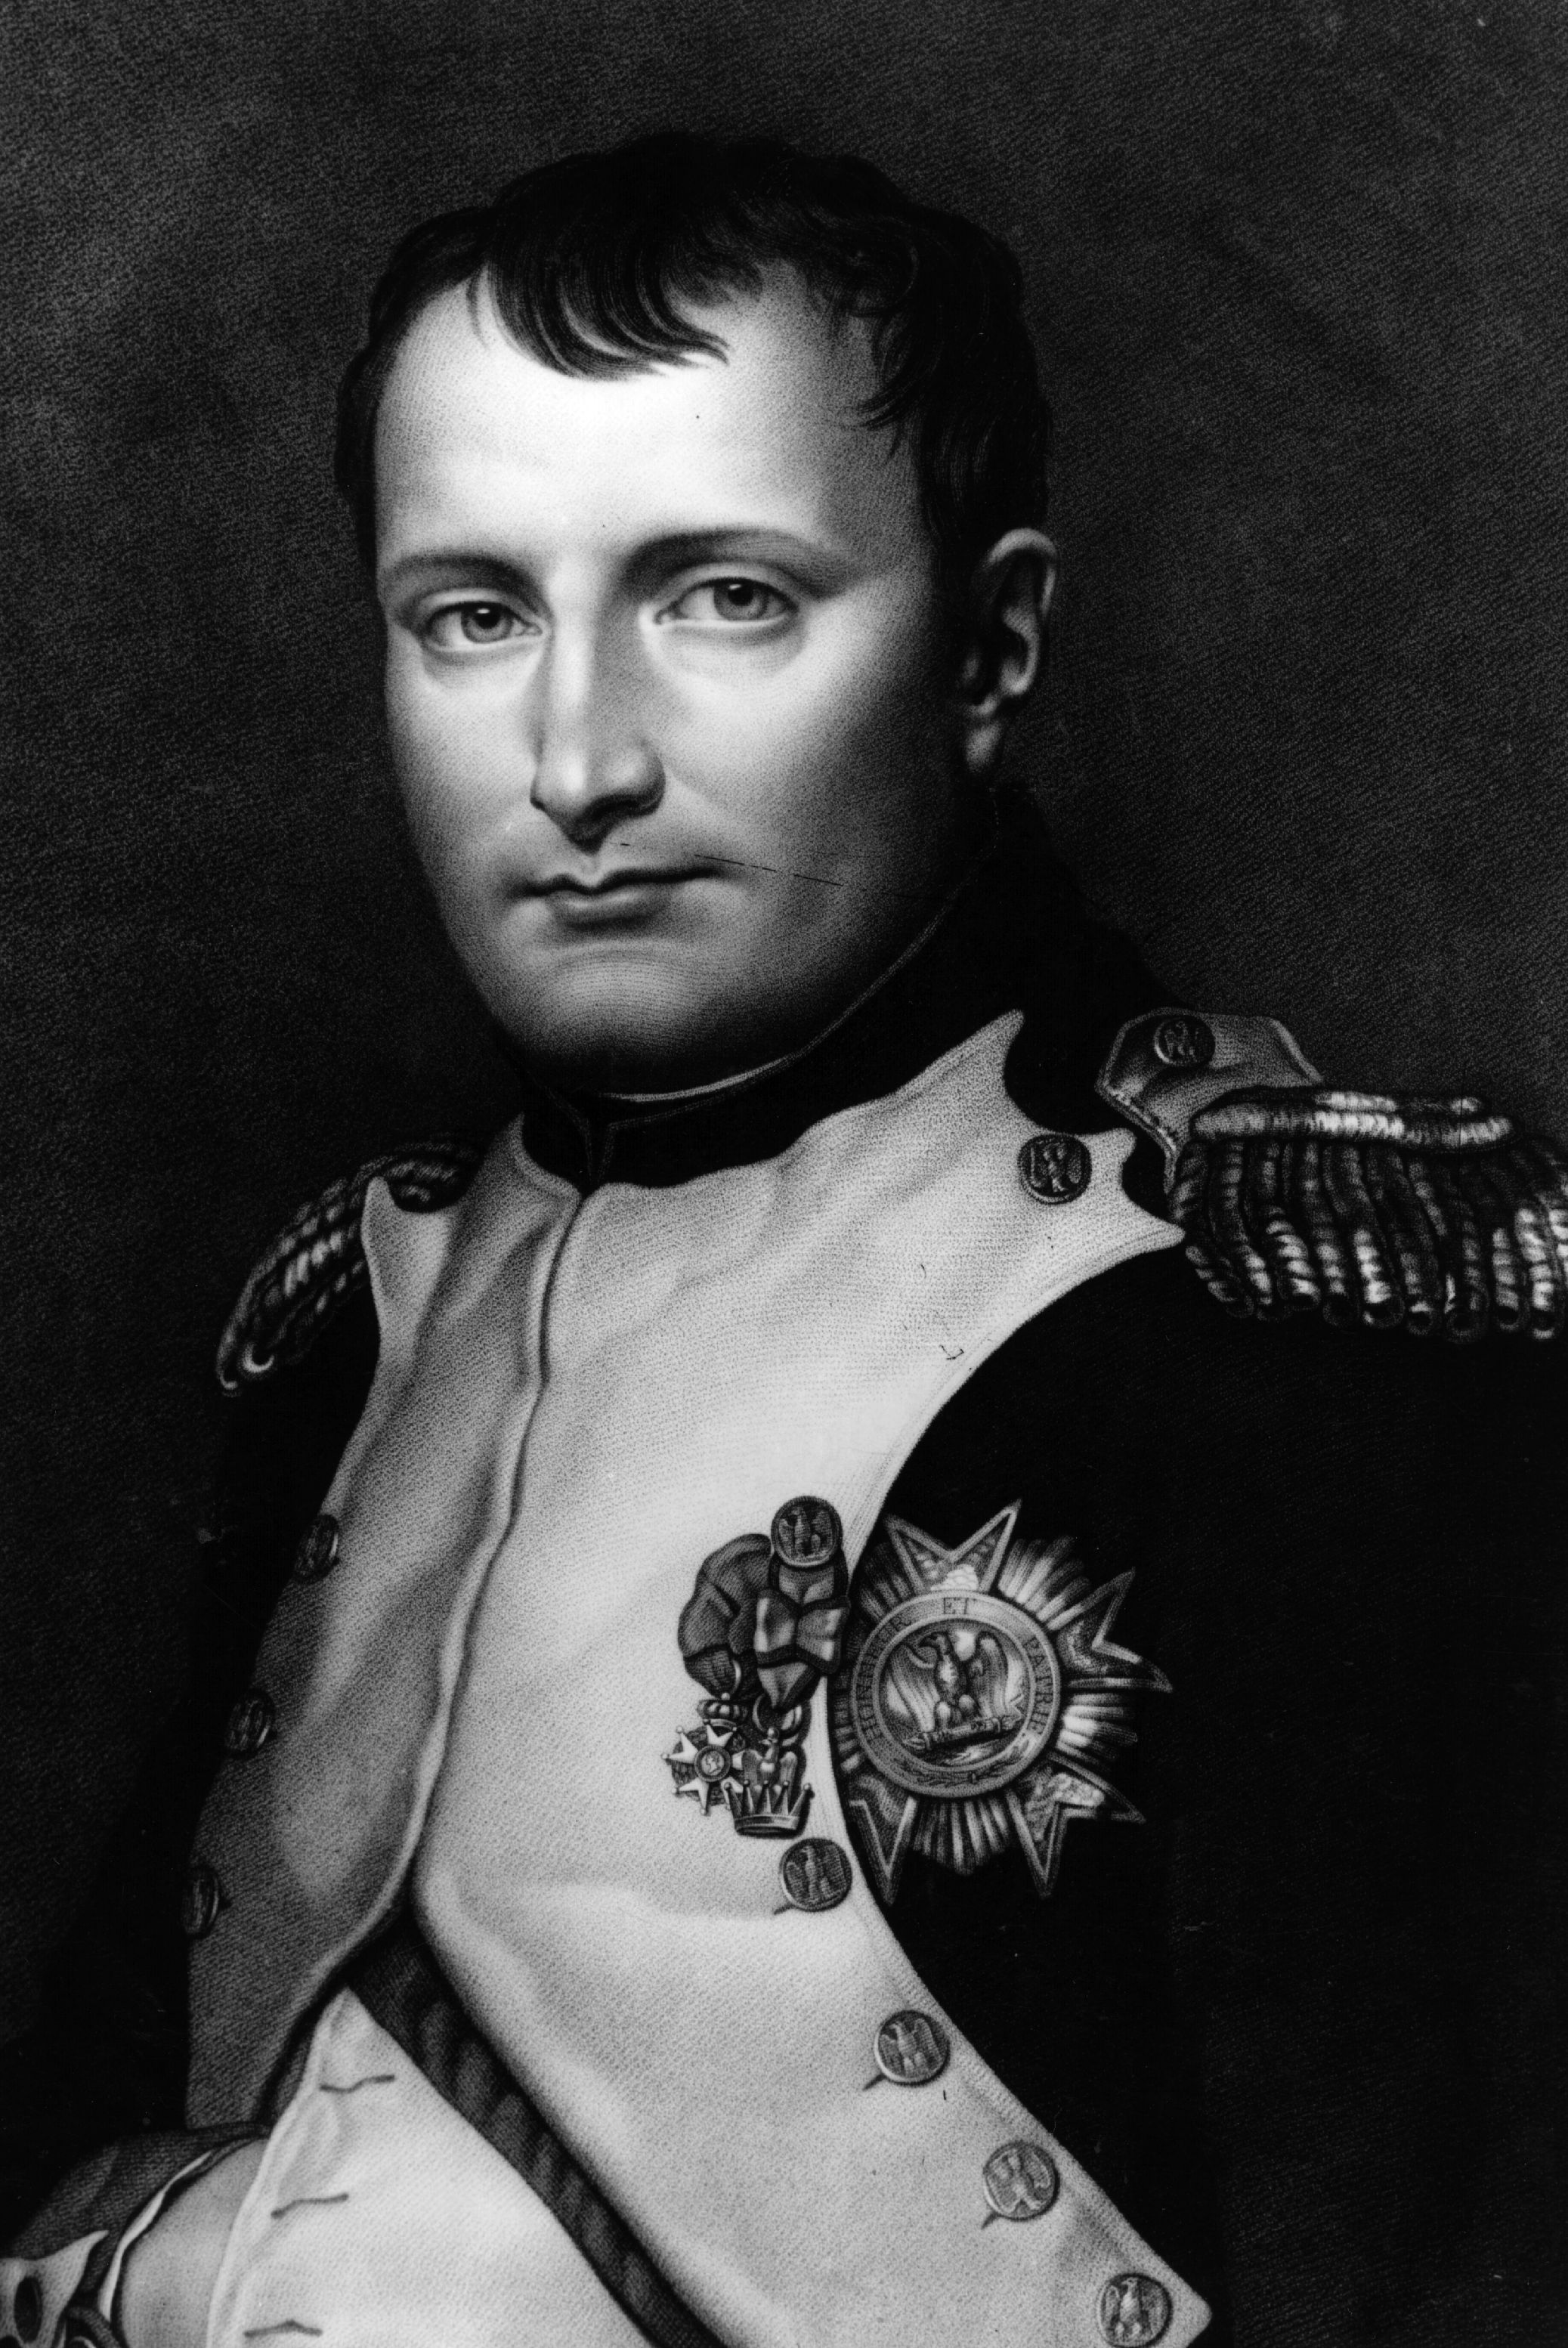 Haircut for boys age 10 napoleon bonaparte  age of emperor napoleon  pinterest  napoleon